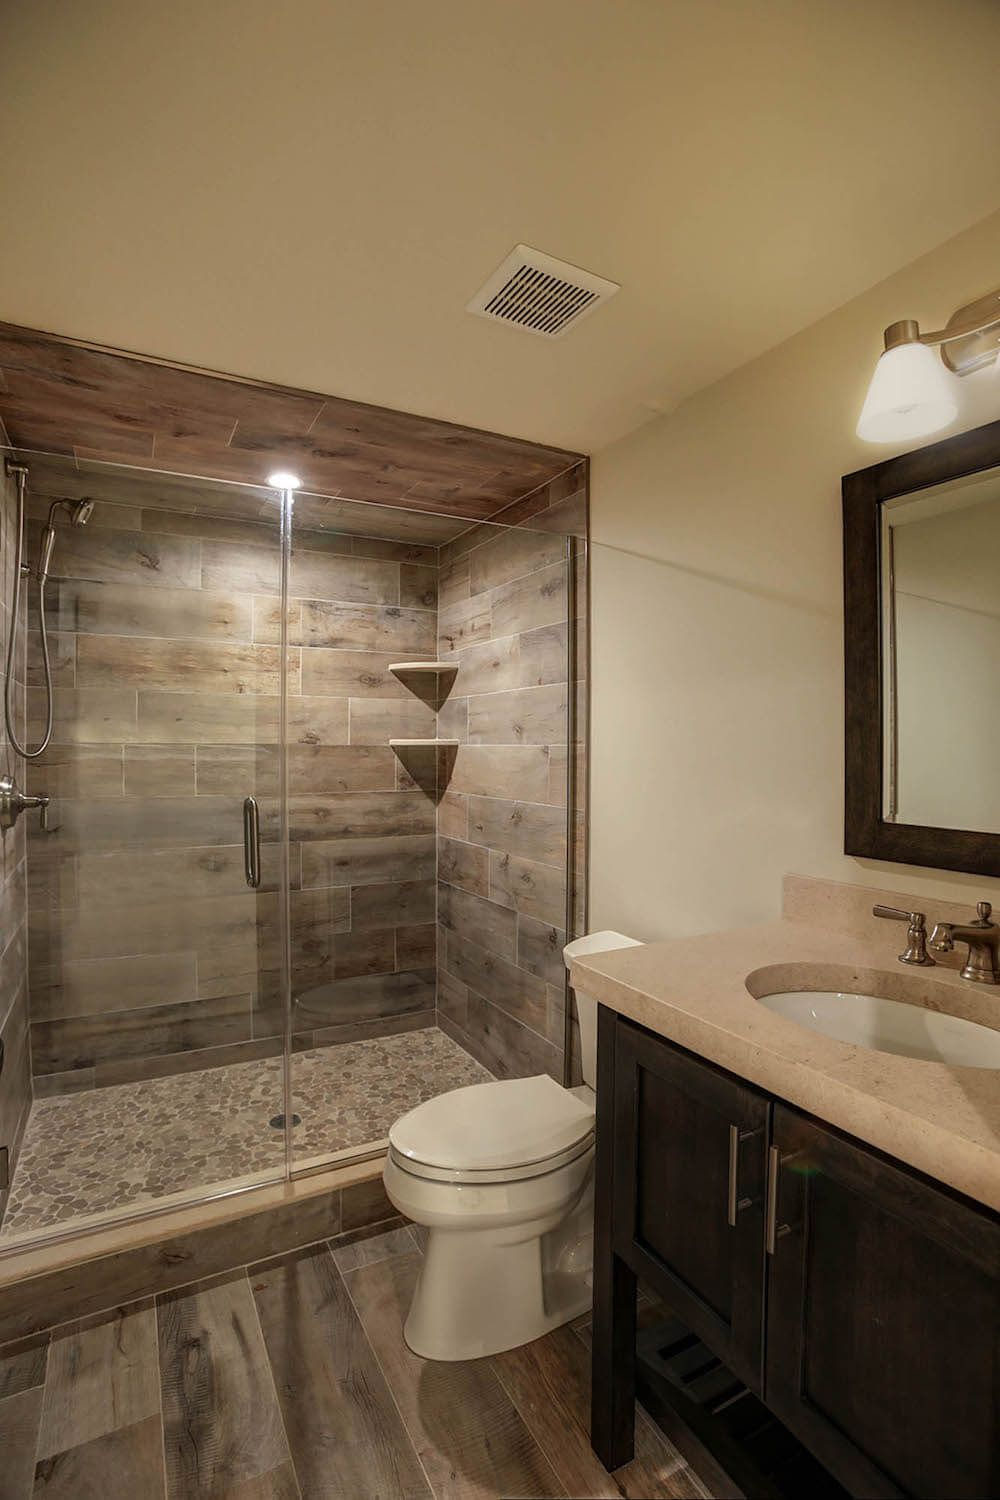 How Much Does It Cost To Finish A Basement Small Bathroom Redo